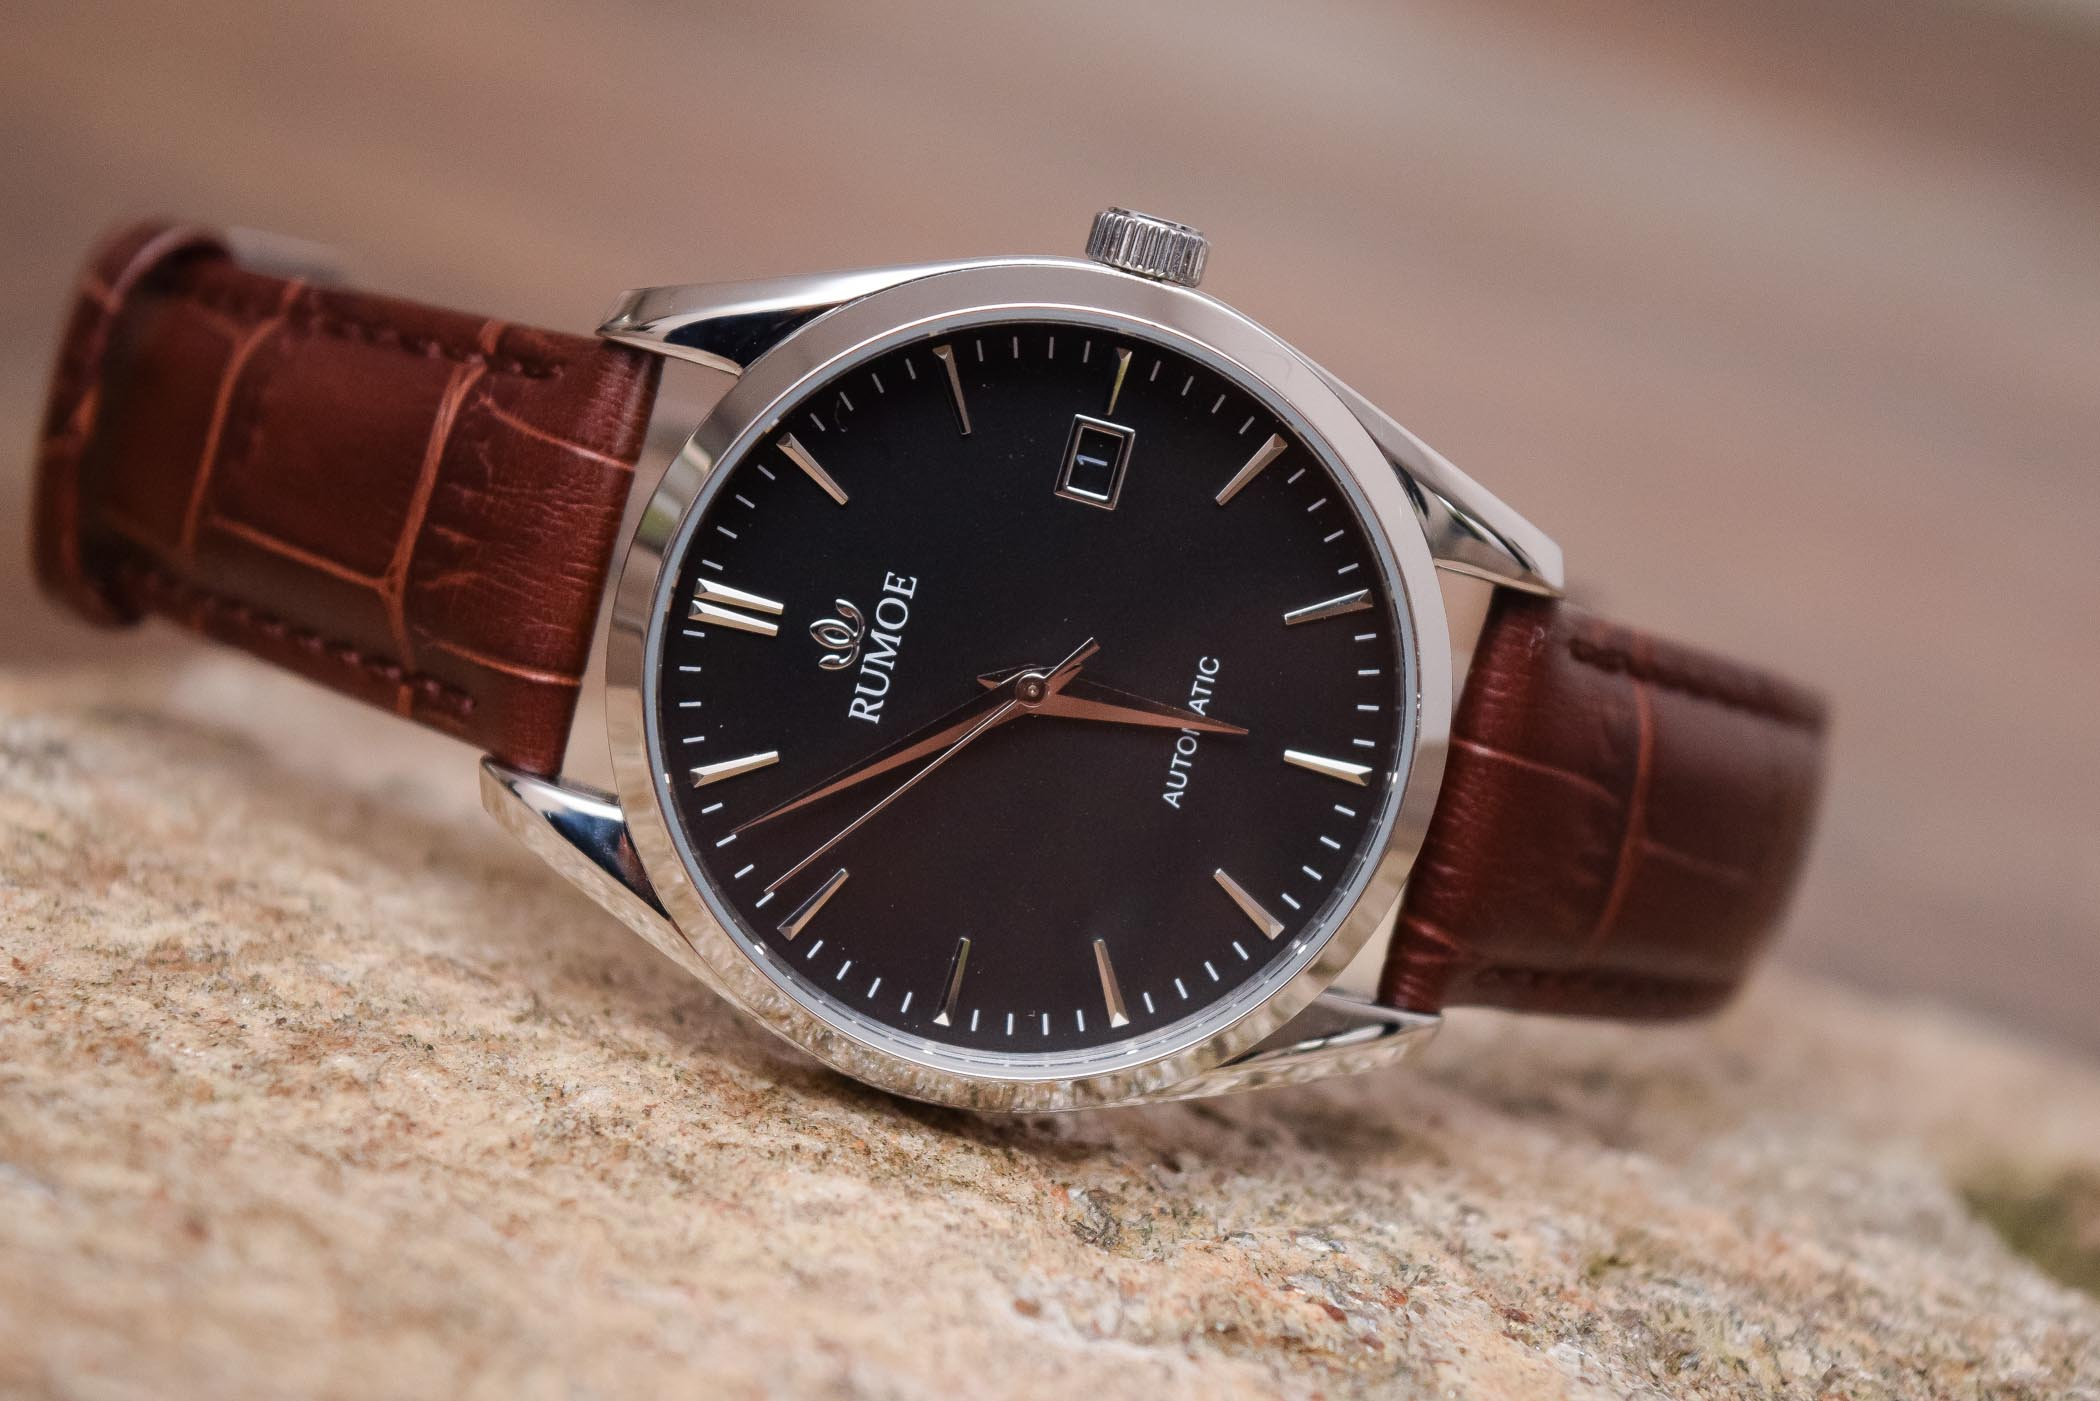 monochrome review rumoe value nobel kickstarter watches watch royal proposition